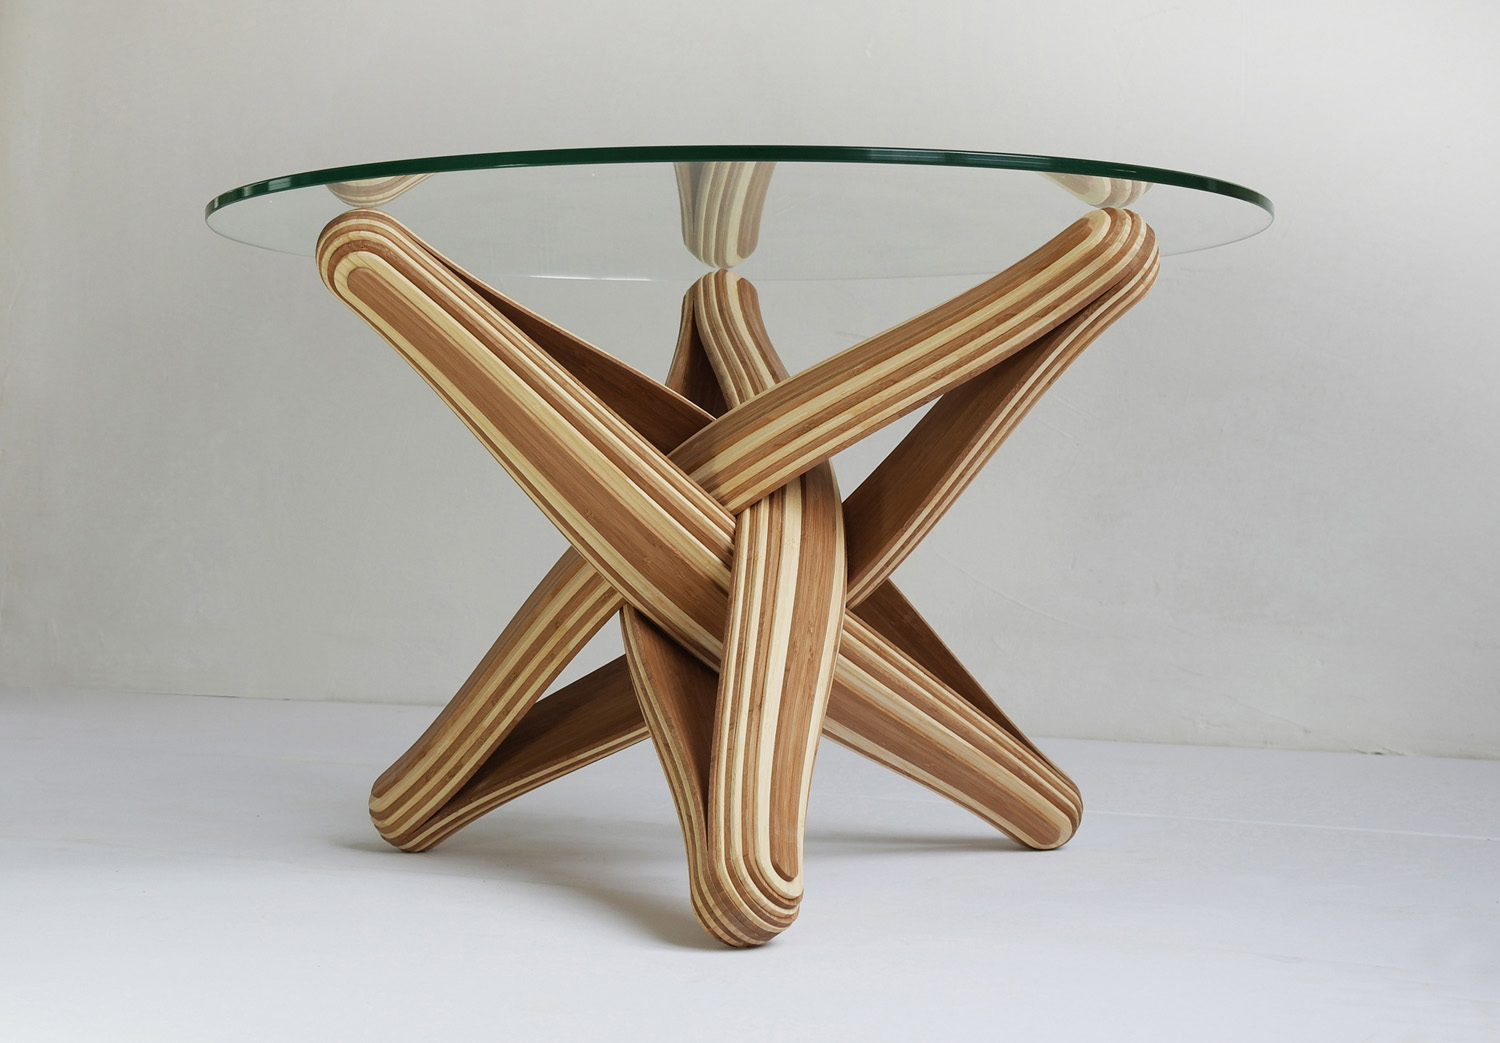 sustainable furniture lock is a bending, twisting coffee table made out of layered, TZCFDSX